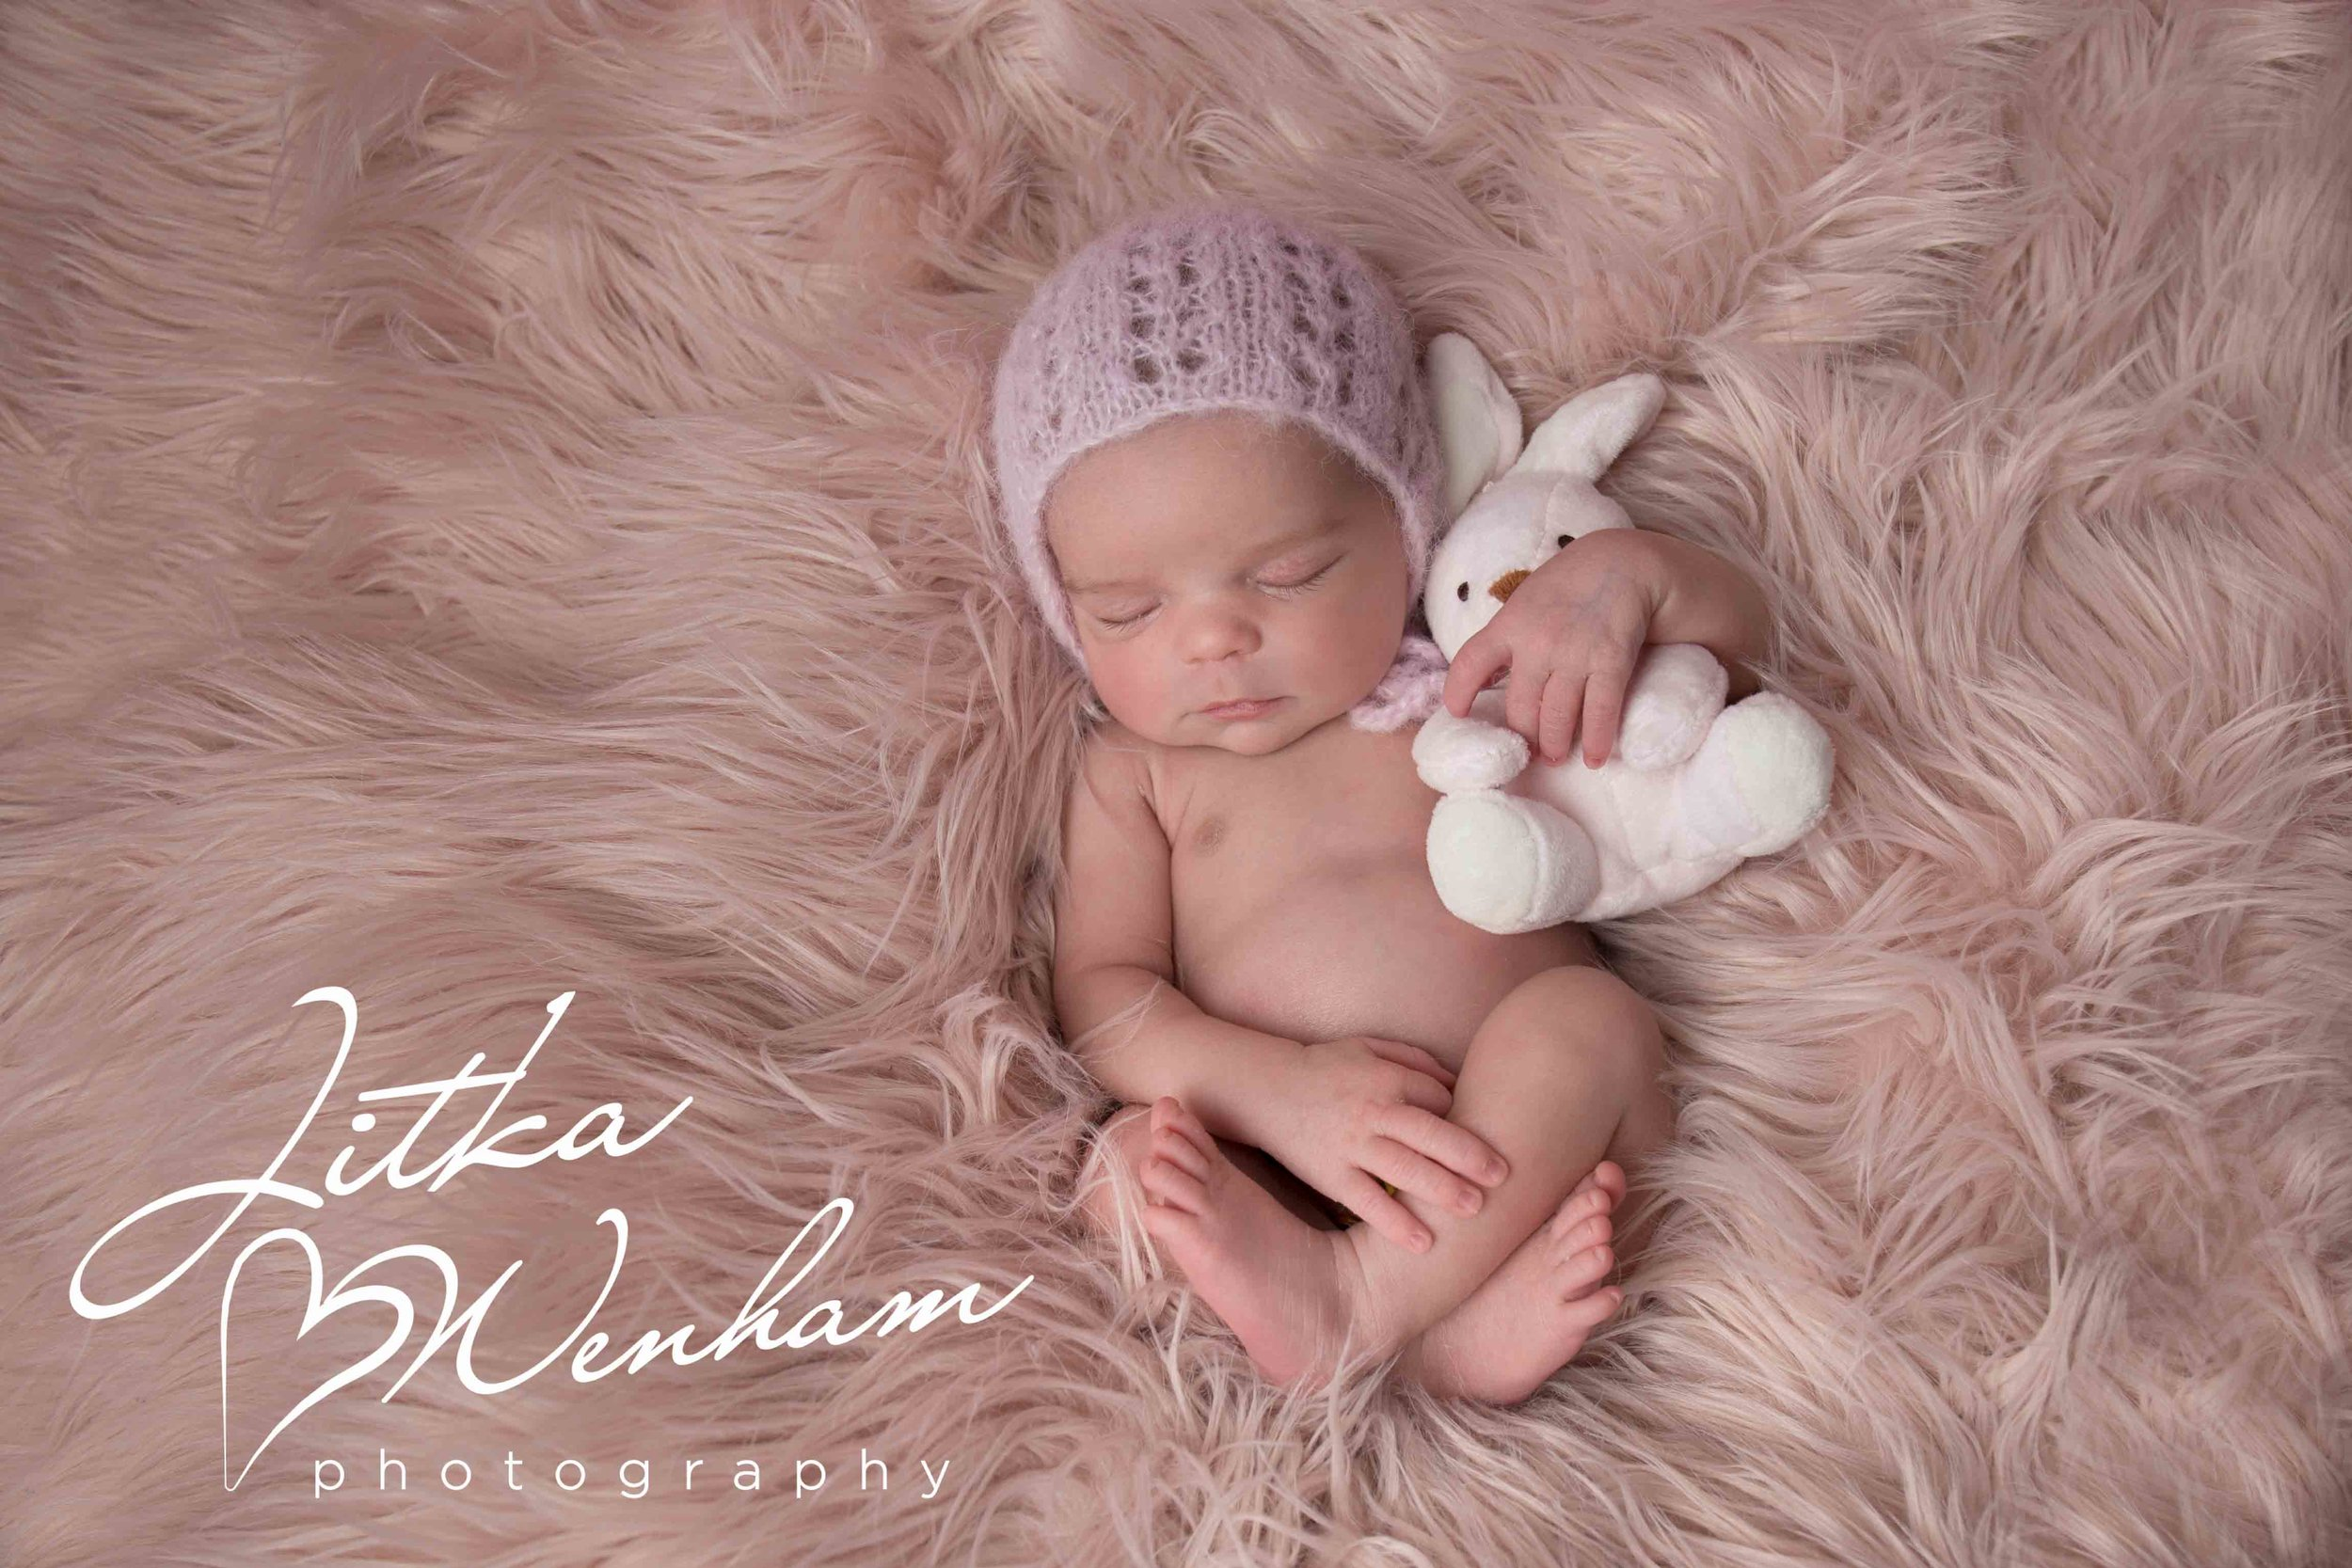 newborn-photography-children-baby-milton keynes-99-1-2.jpg